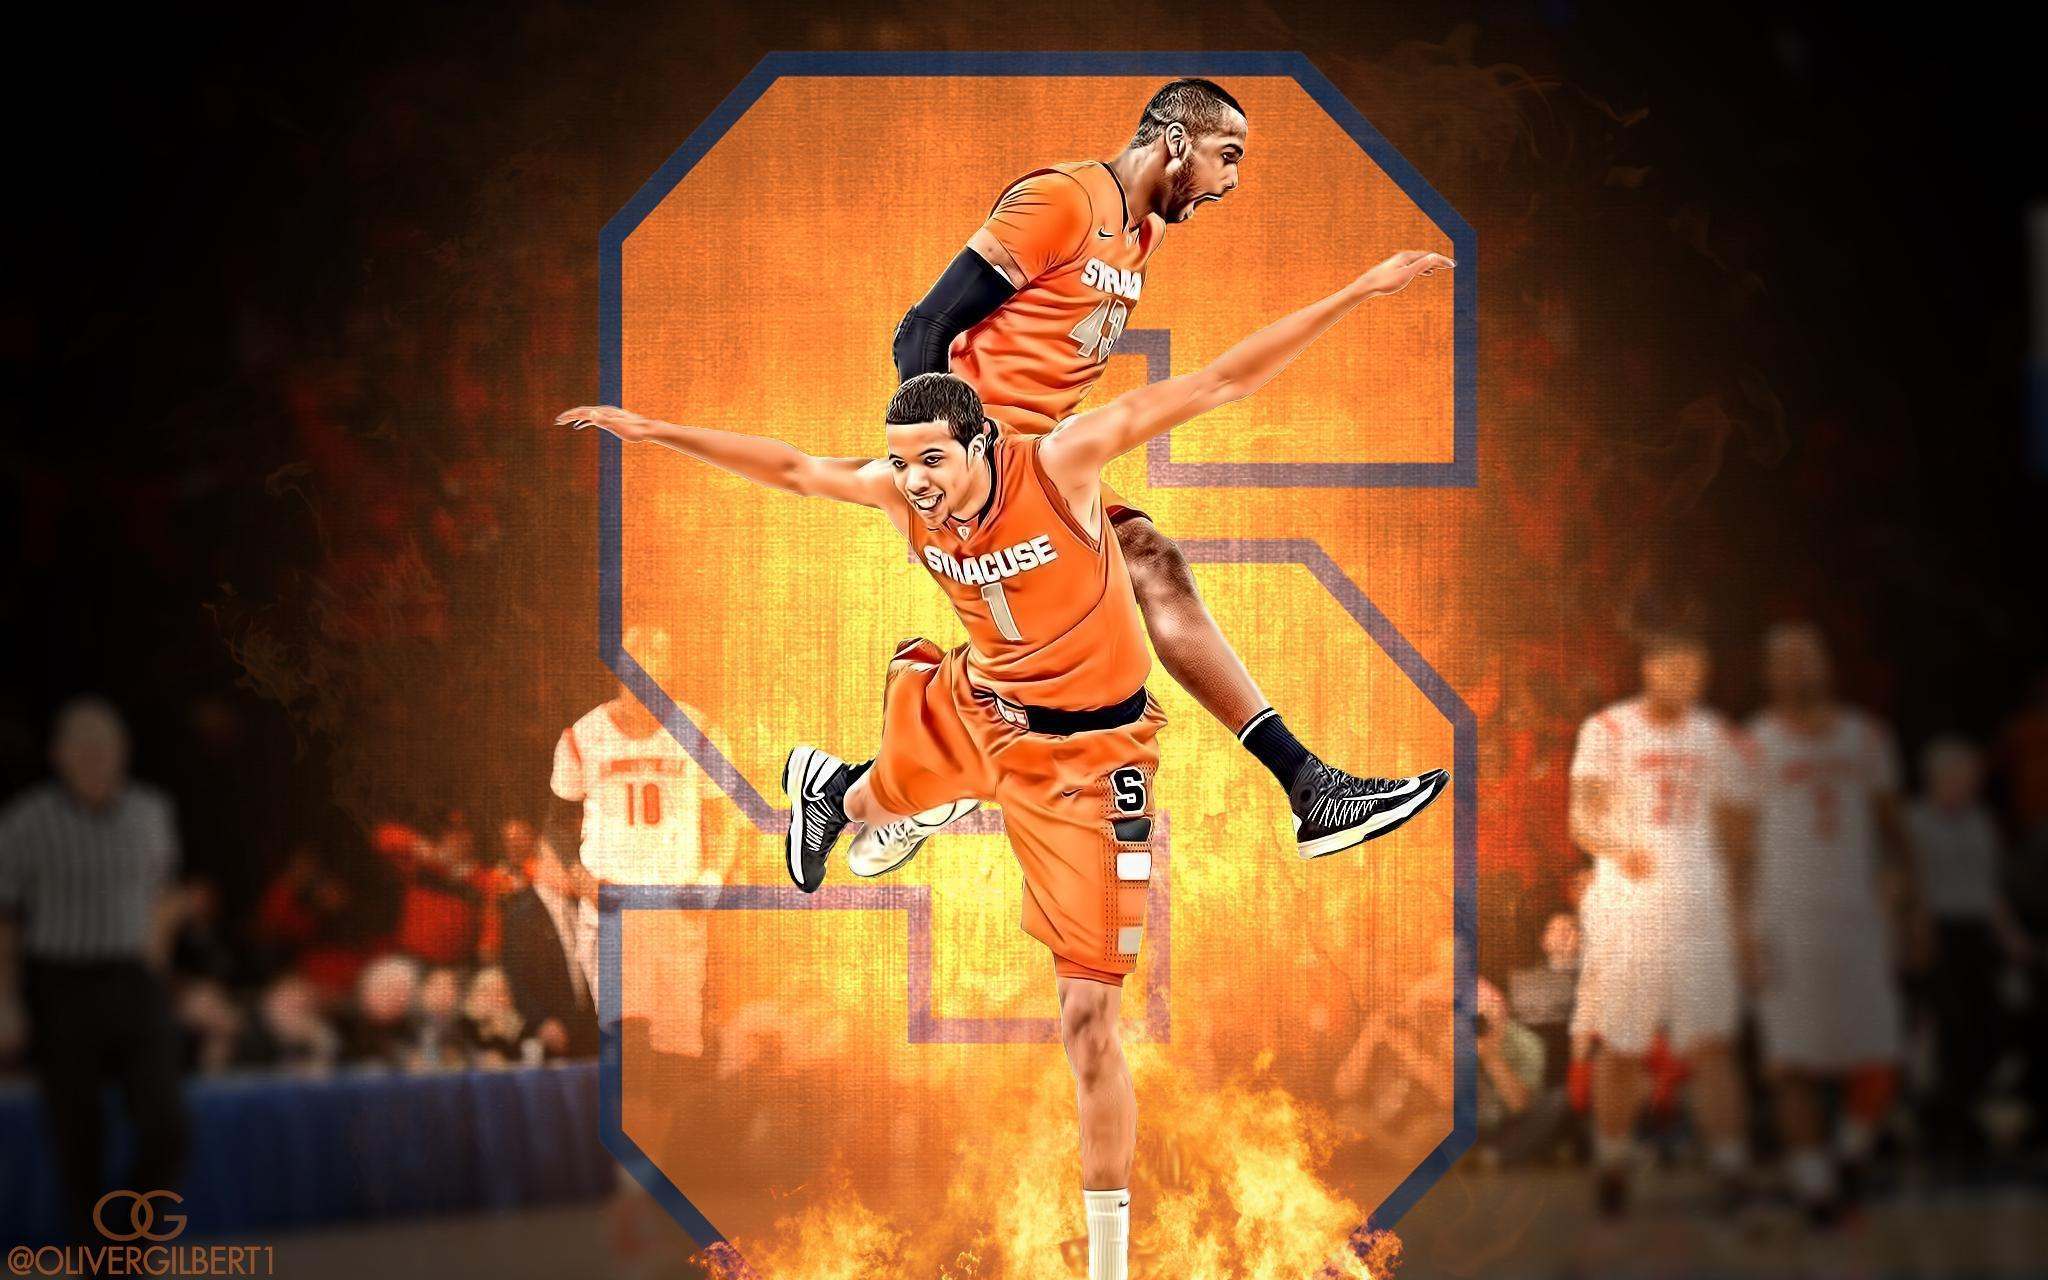 College Basketball Wallpapers 2048x1280